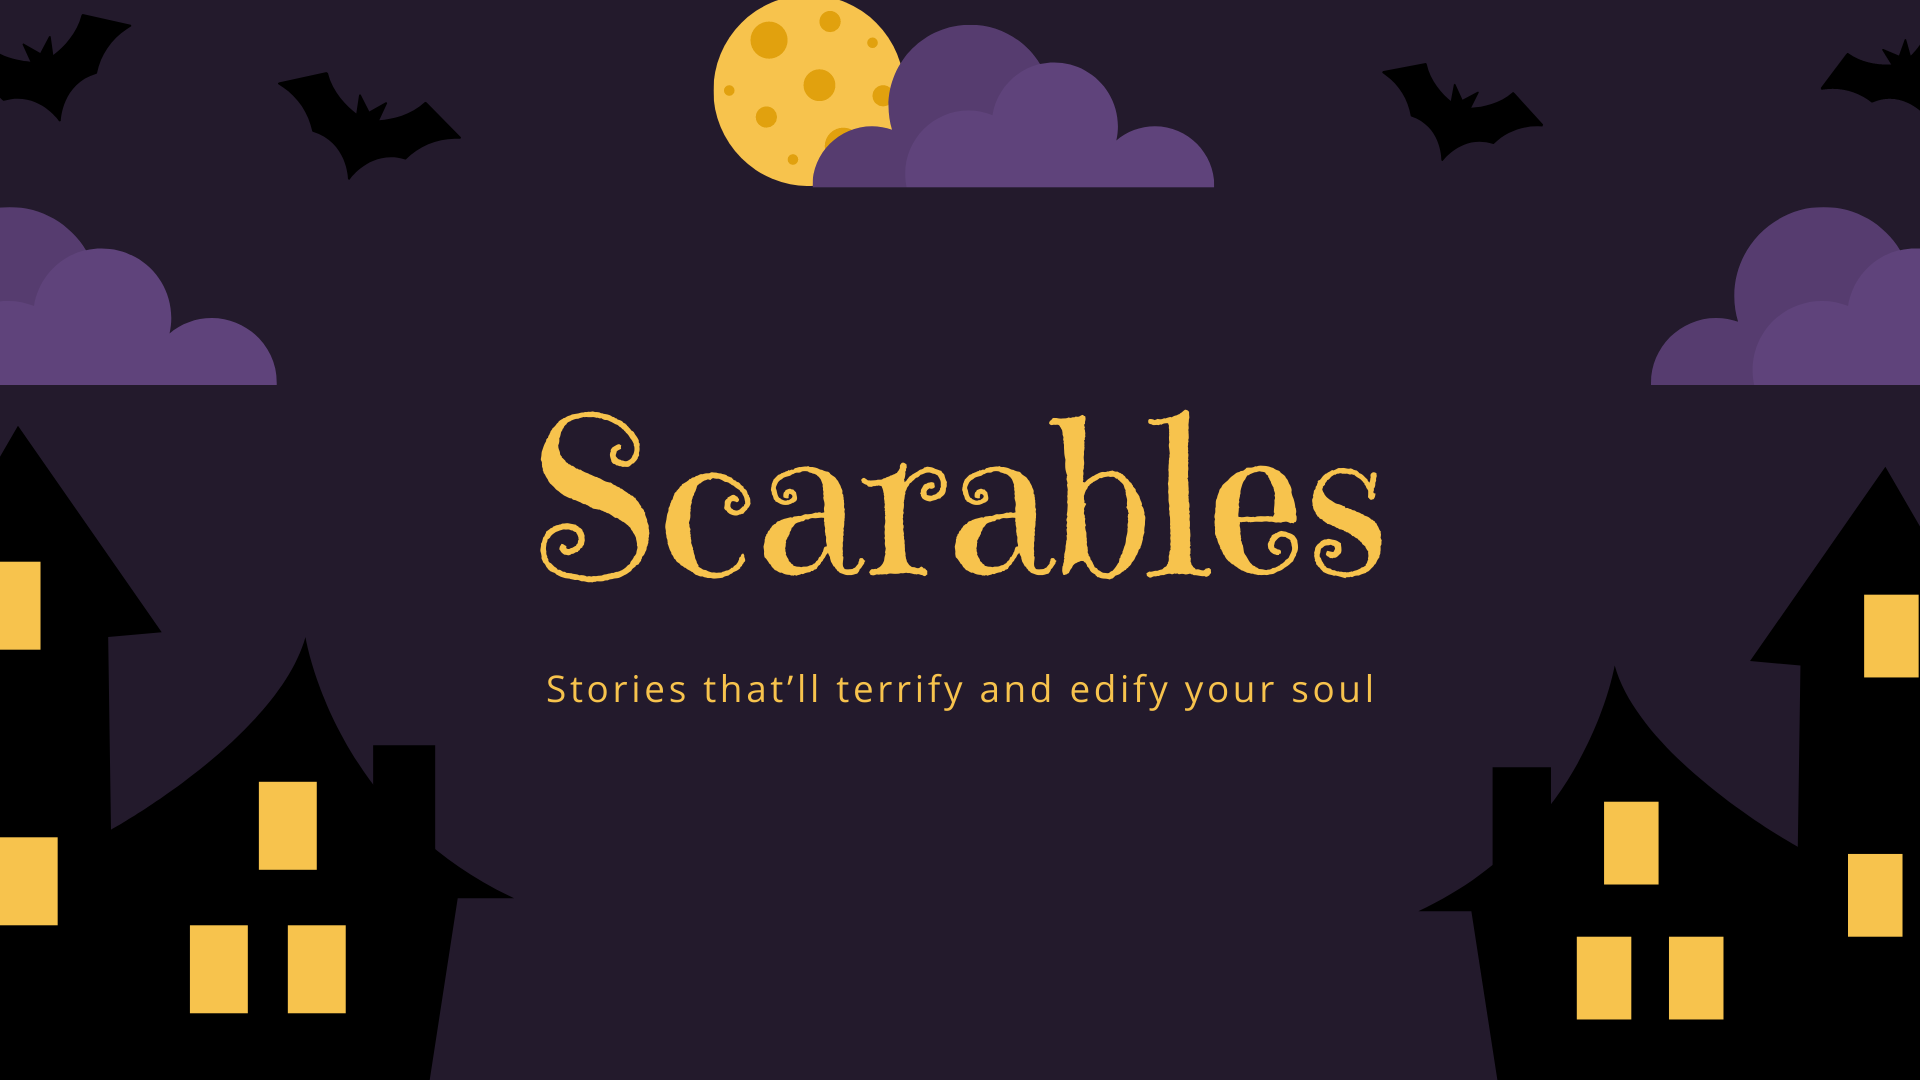 Scarables: Stories that'll terrify and edify your soul